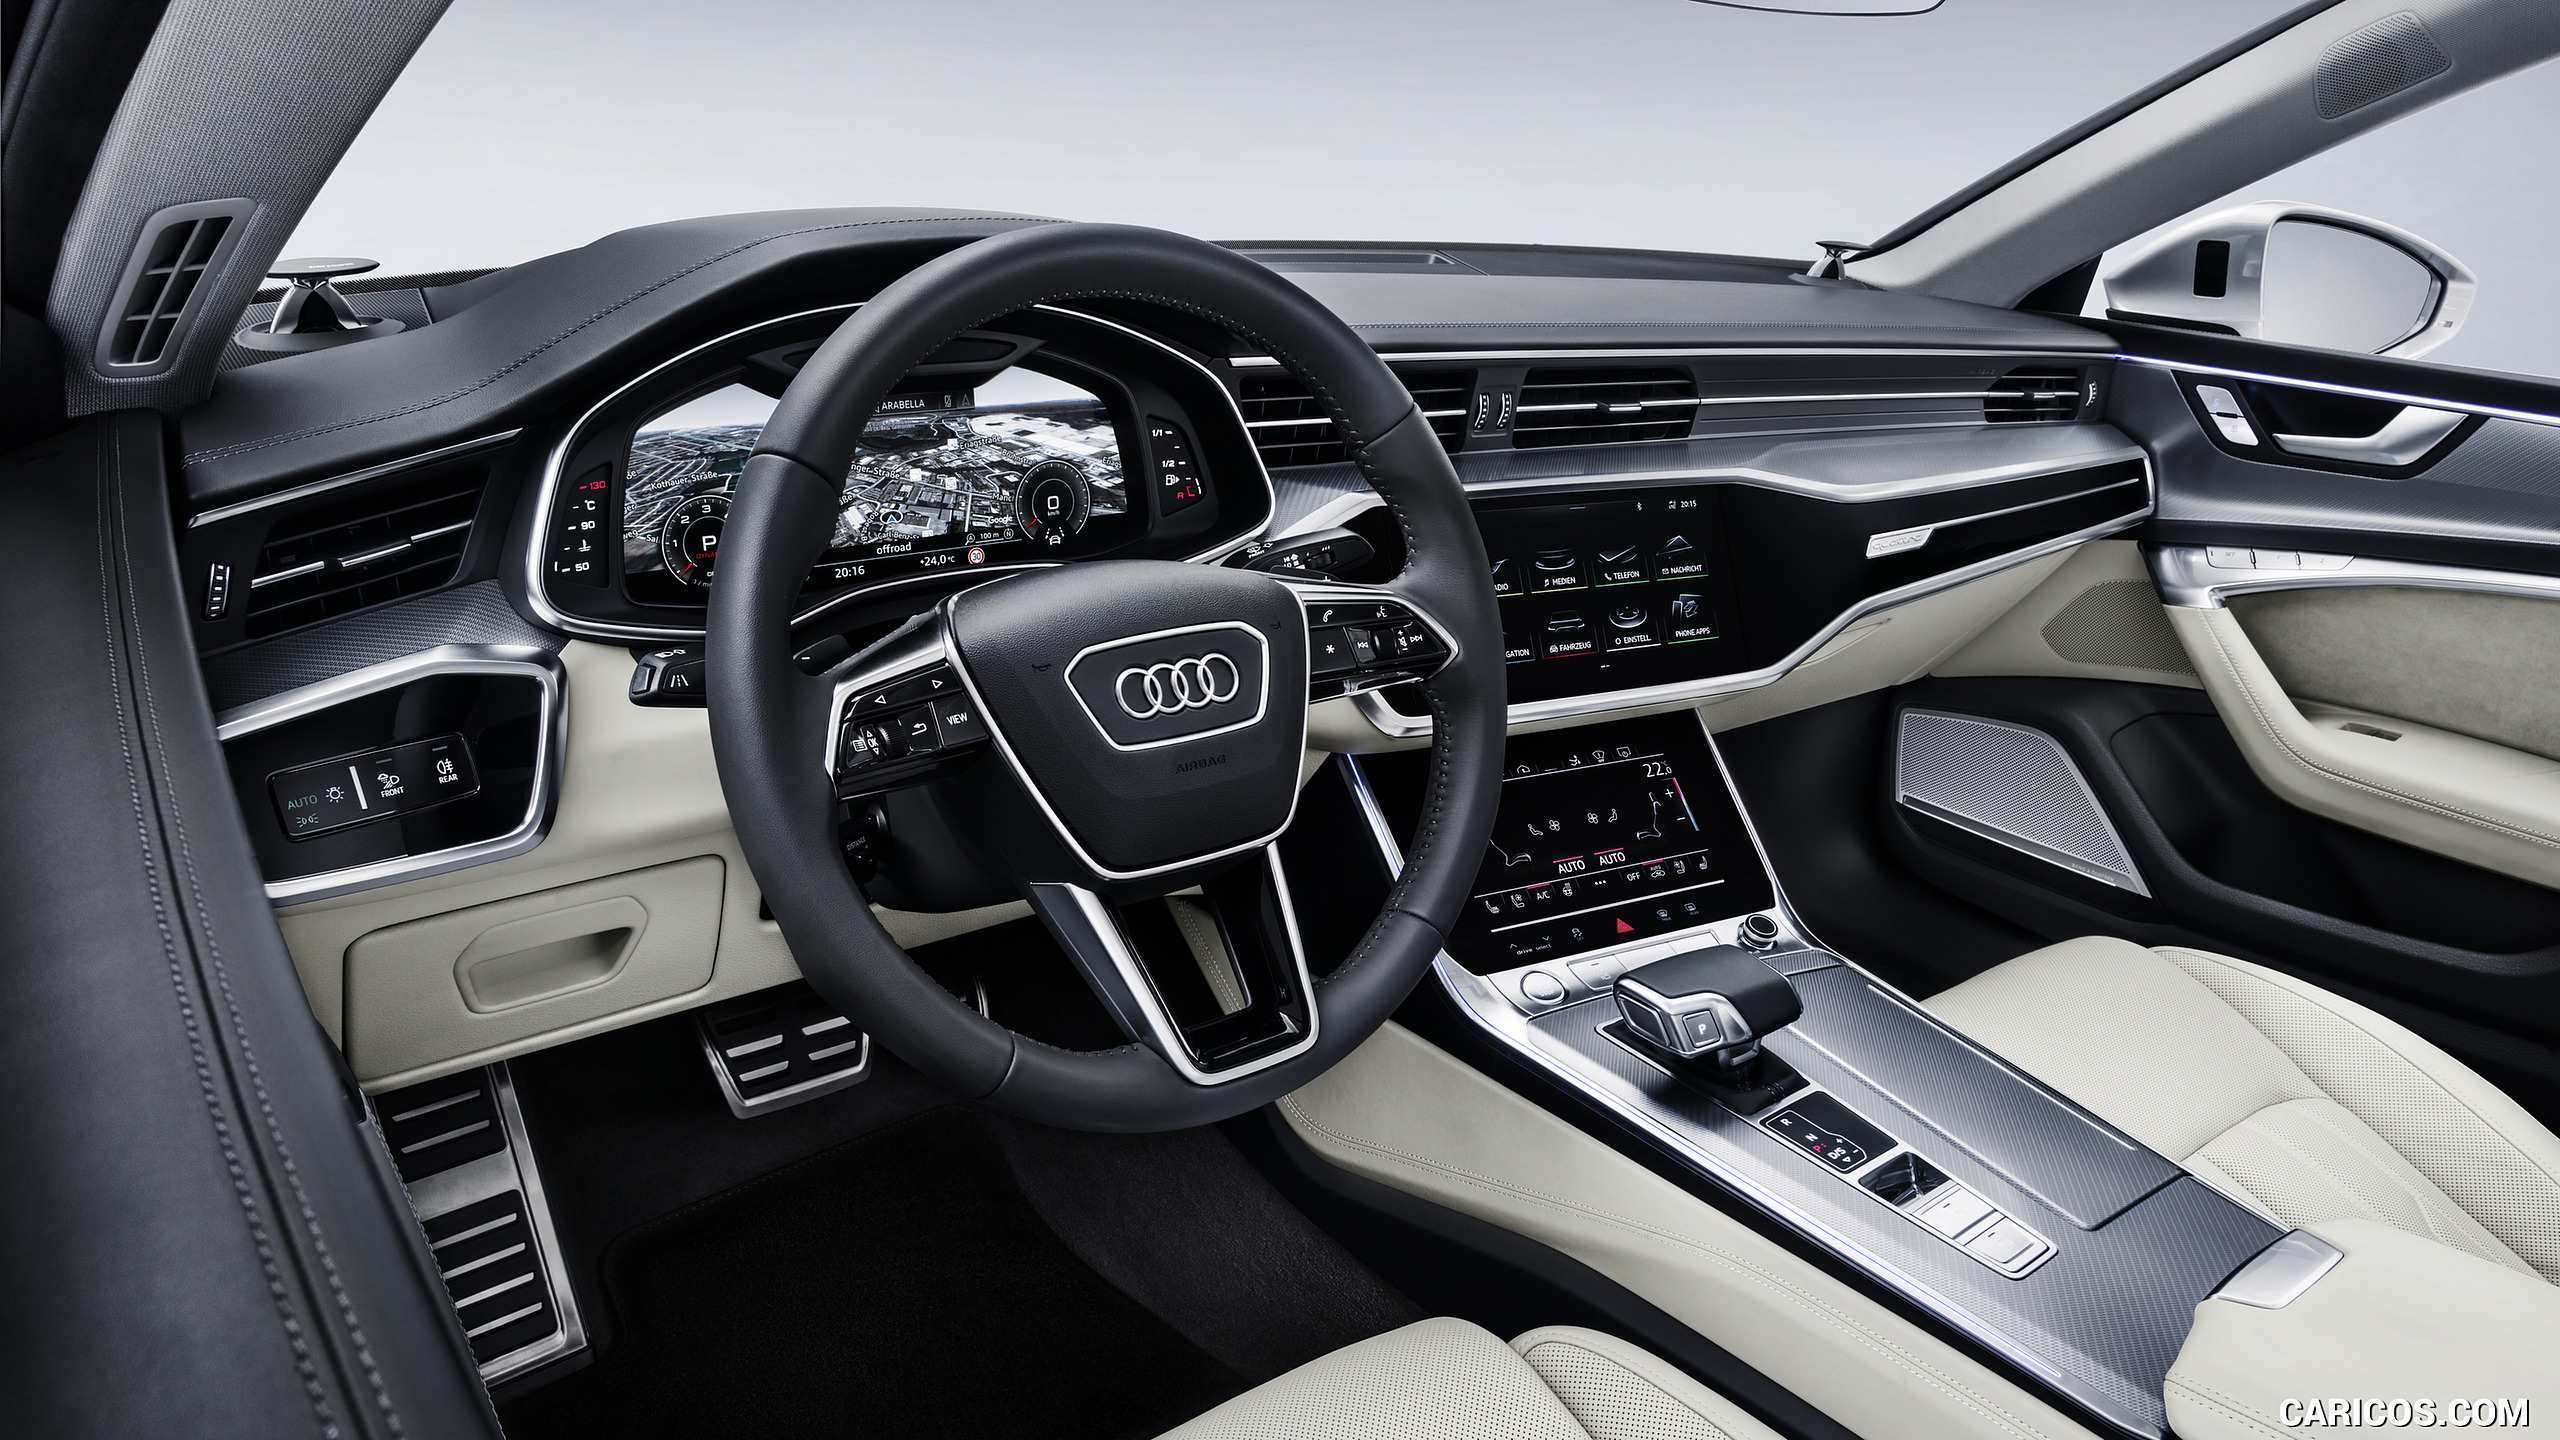 32 Great 2019 Audi A7 Interior Prices with 2019 Audi A7 Interior